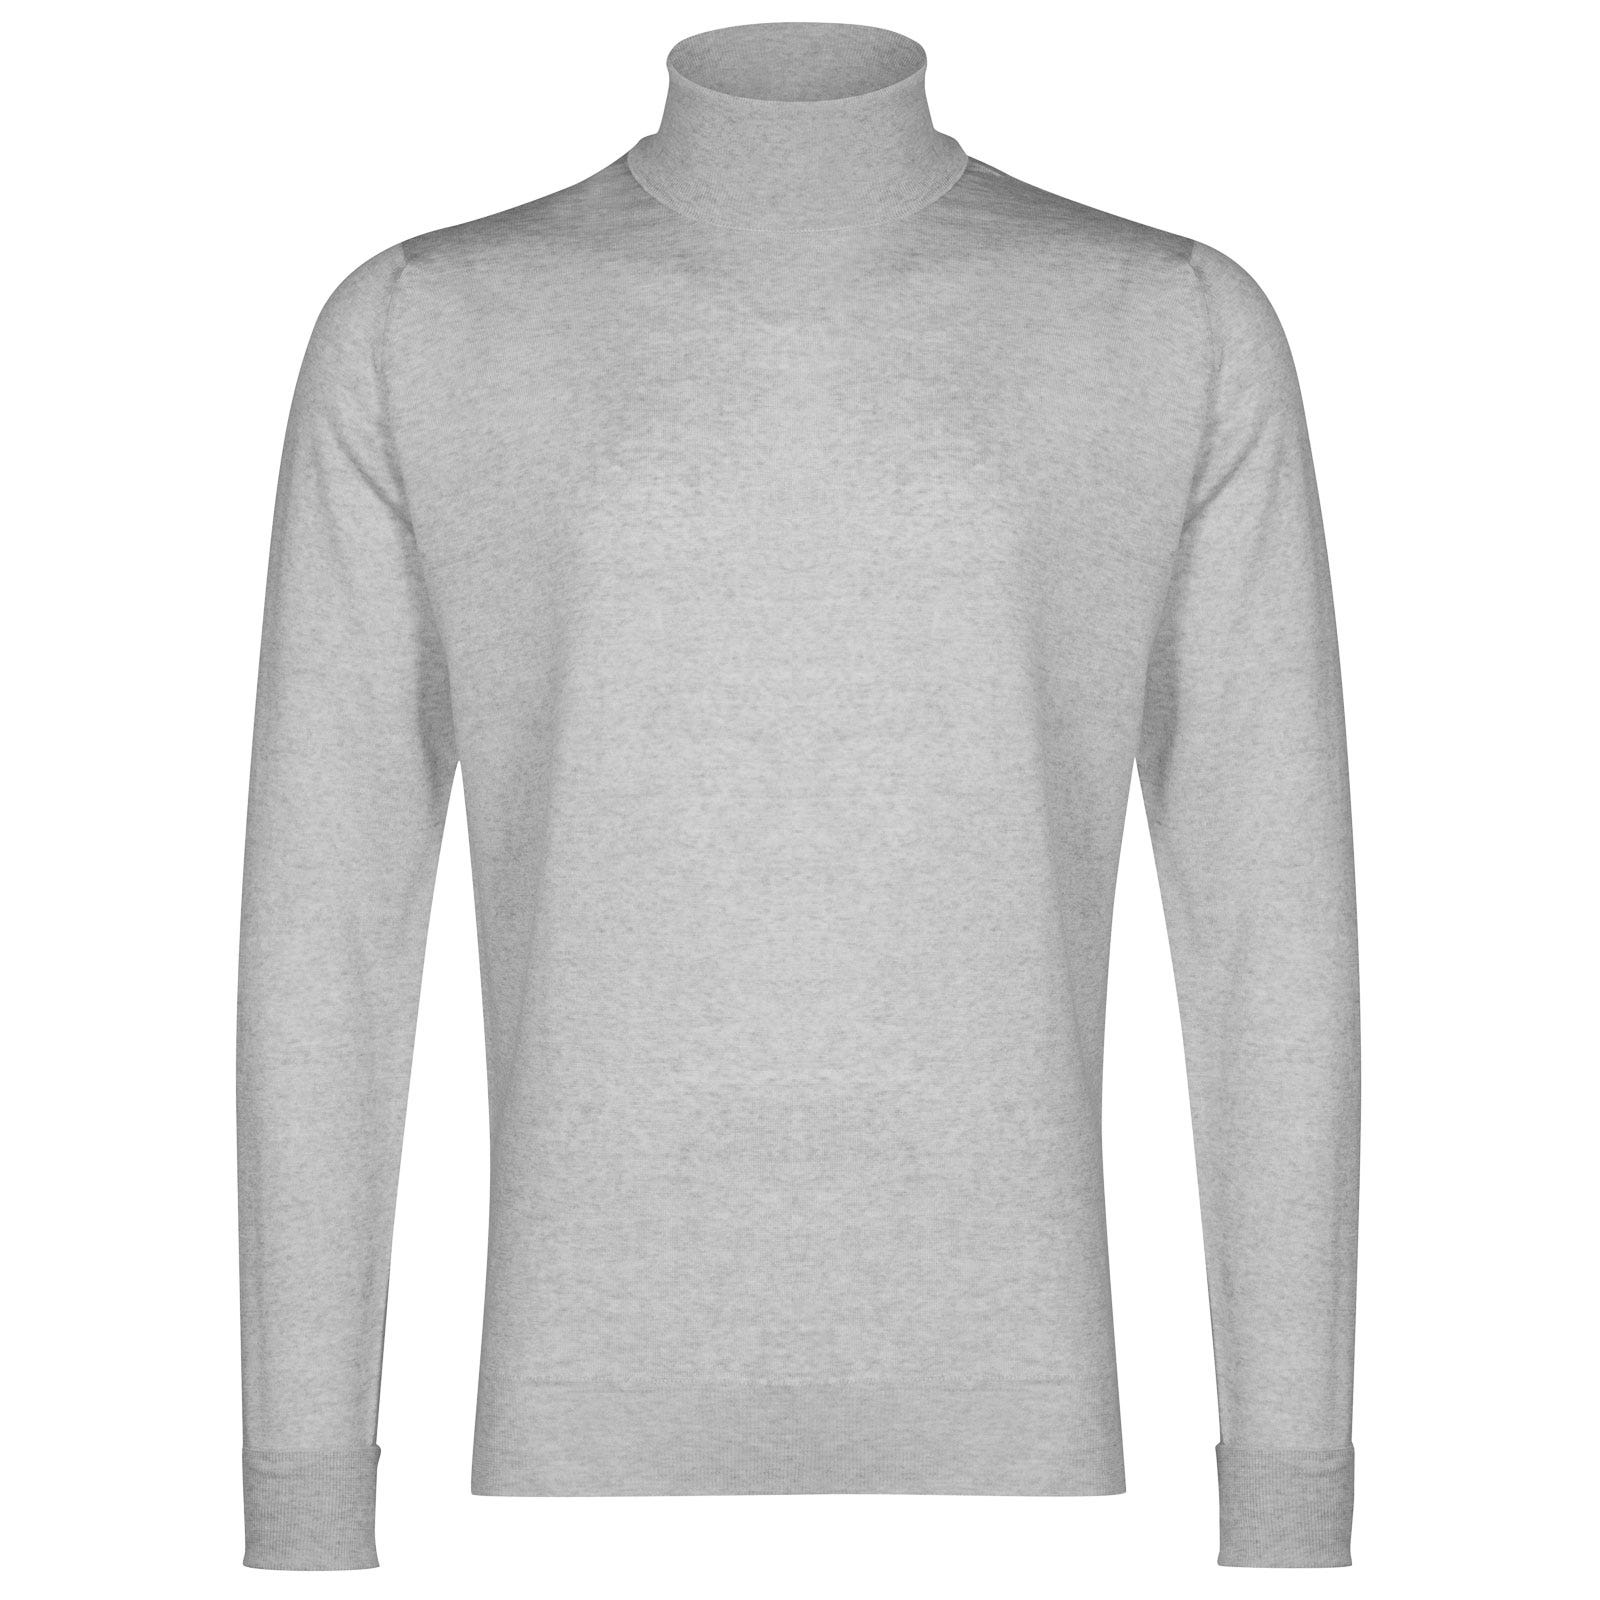 John Smedley richards Merino Wool Pullover in Bardot Grey-M